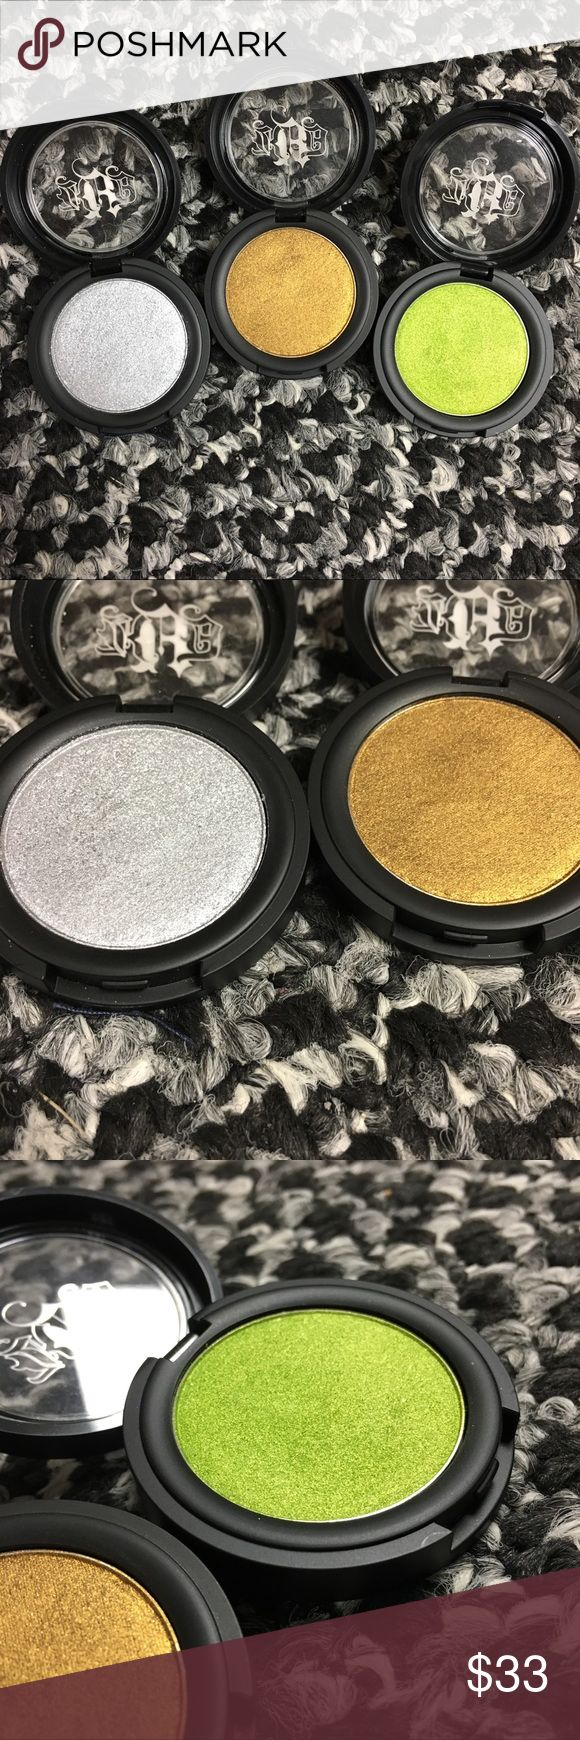 Kat Von D eyeshadow trio Three Kat Von D Metal Crush Eyeshadows in Static Age, Thrasher and Electric Warrior. Swatched. Will include free gift! ❤️ Kat Von D Makeup Eyeshadow